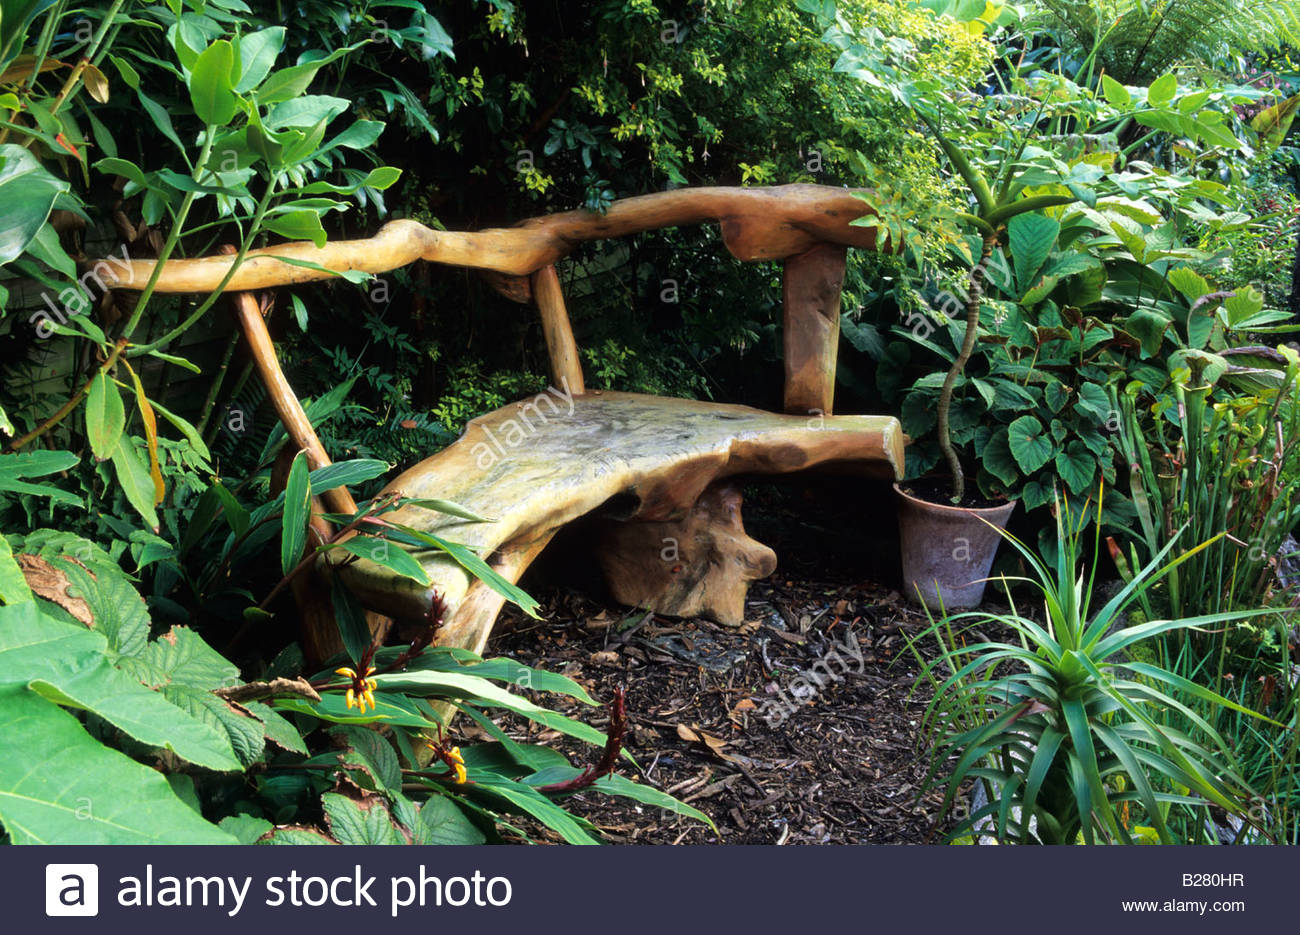 Waterford lane Hampshire sculptural wooden bench - Stock Image